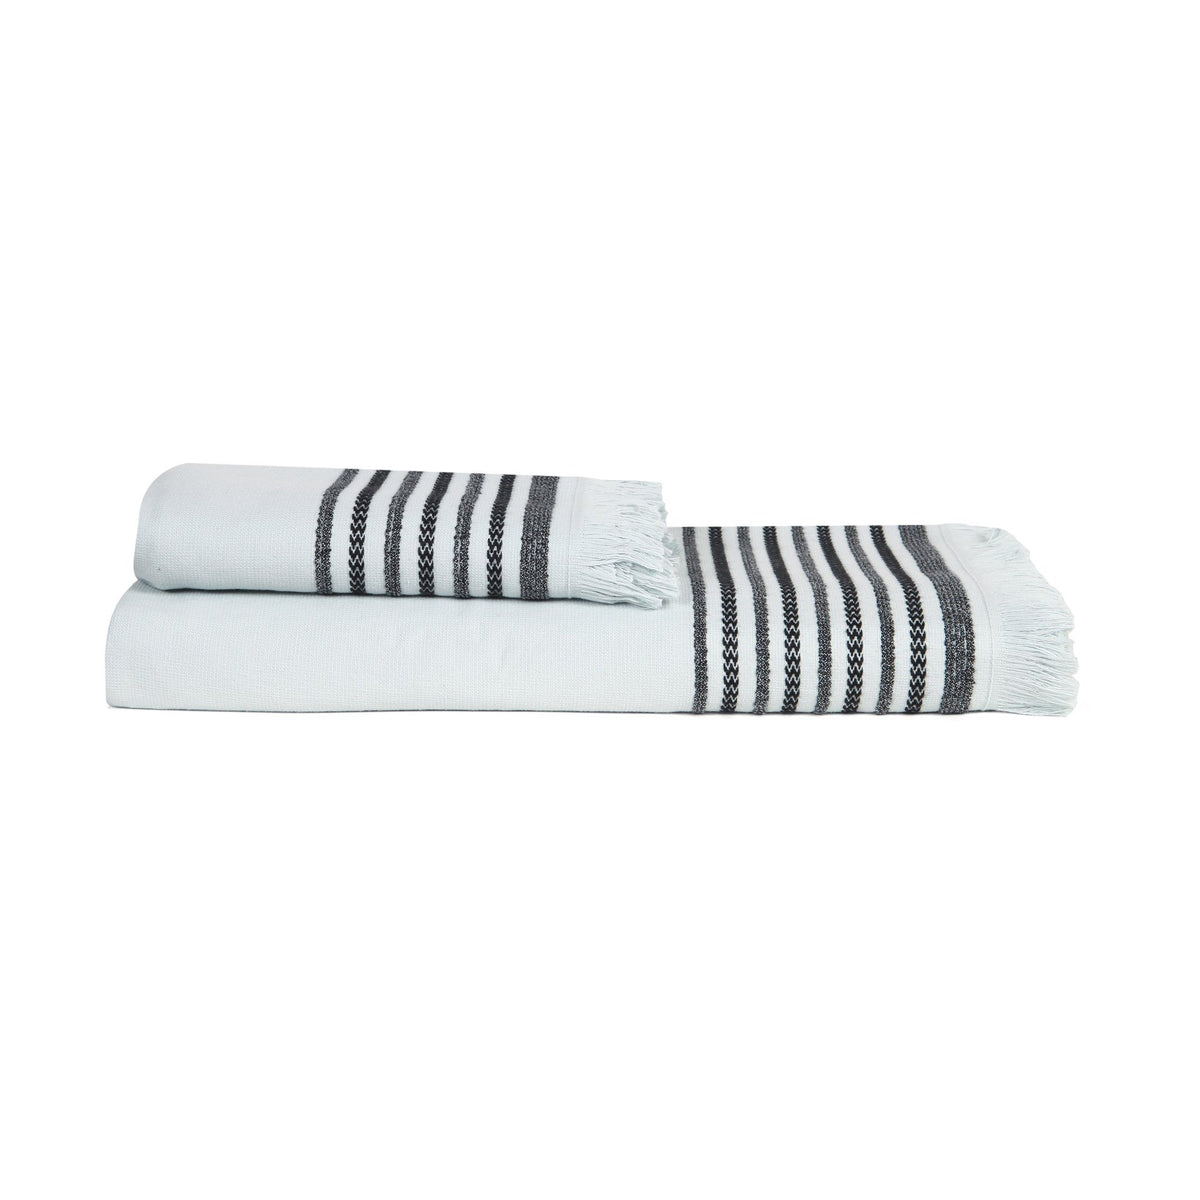 Dash Turkish Towel Set